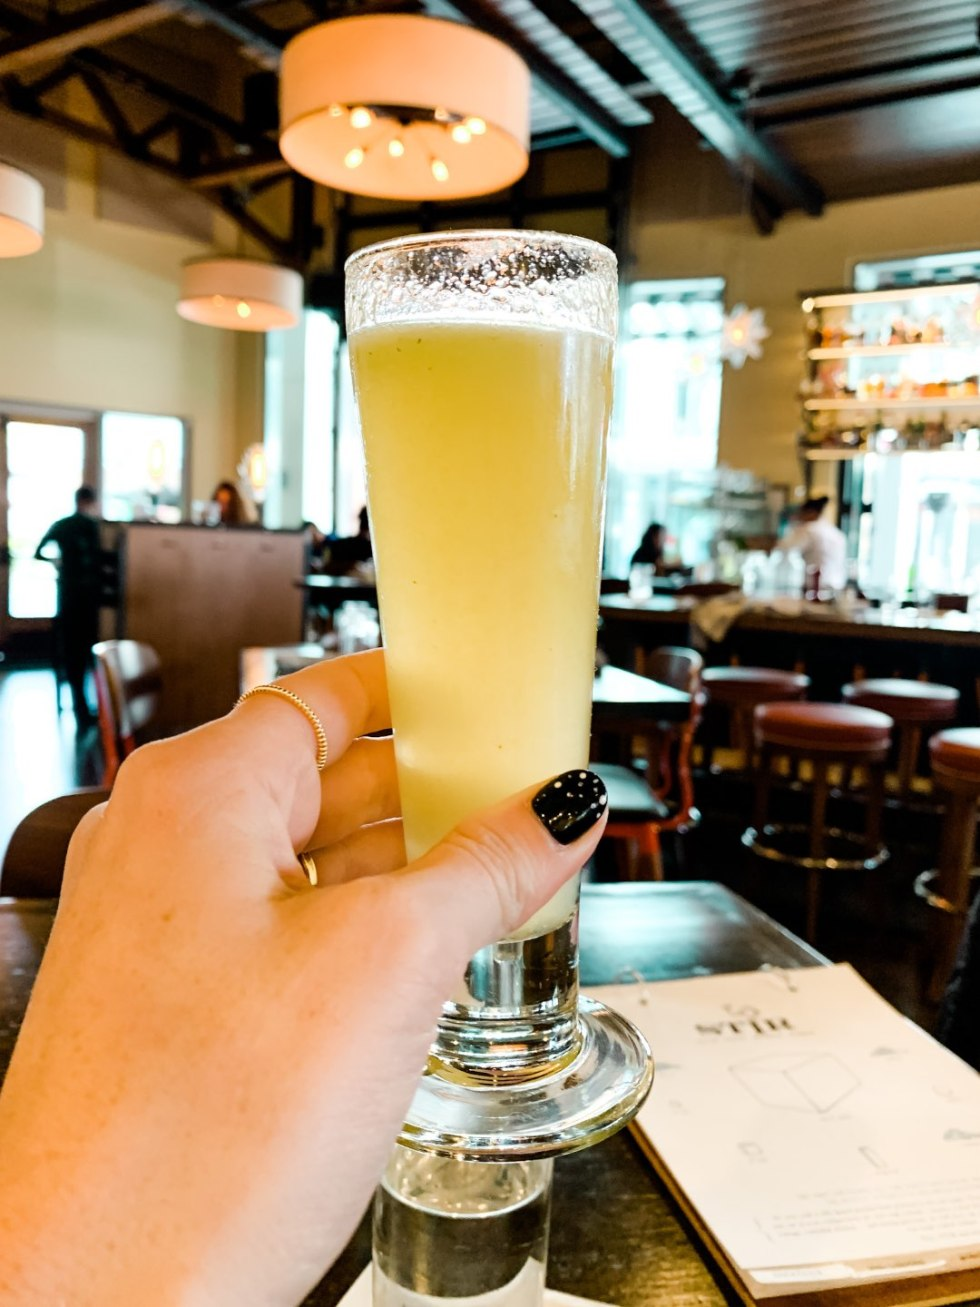 Where to Get Brunch in Raleigh: the 7 Best Spots - I'm Fixin' To - @mbg0112 | Brunch in Raleigh by popular Raleigh blog, I'm Fixin To: image of a woman holding an alcoholic beverage at Stir.